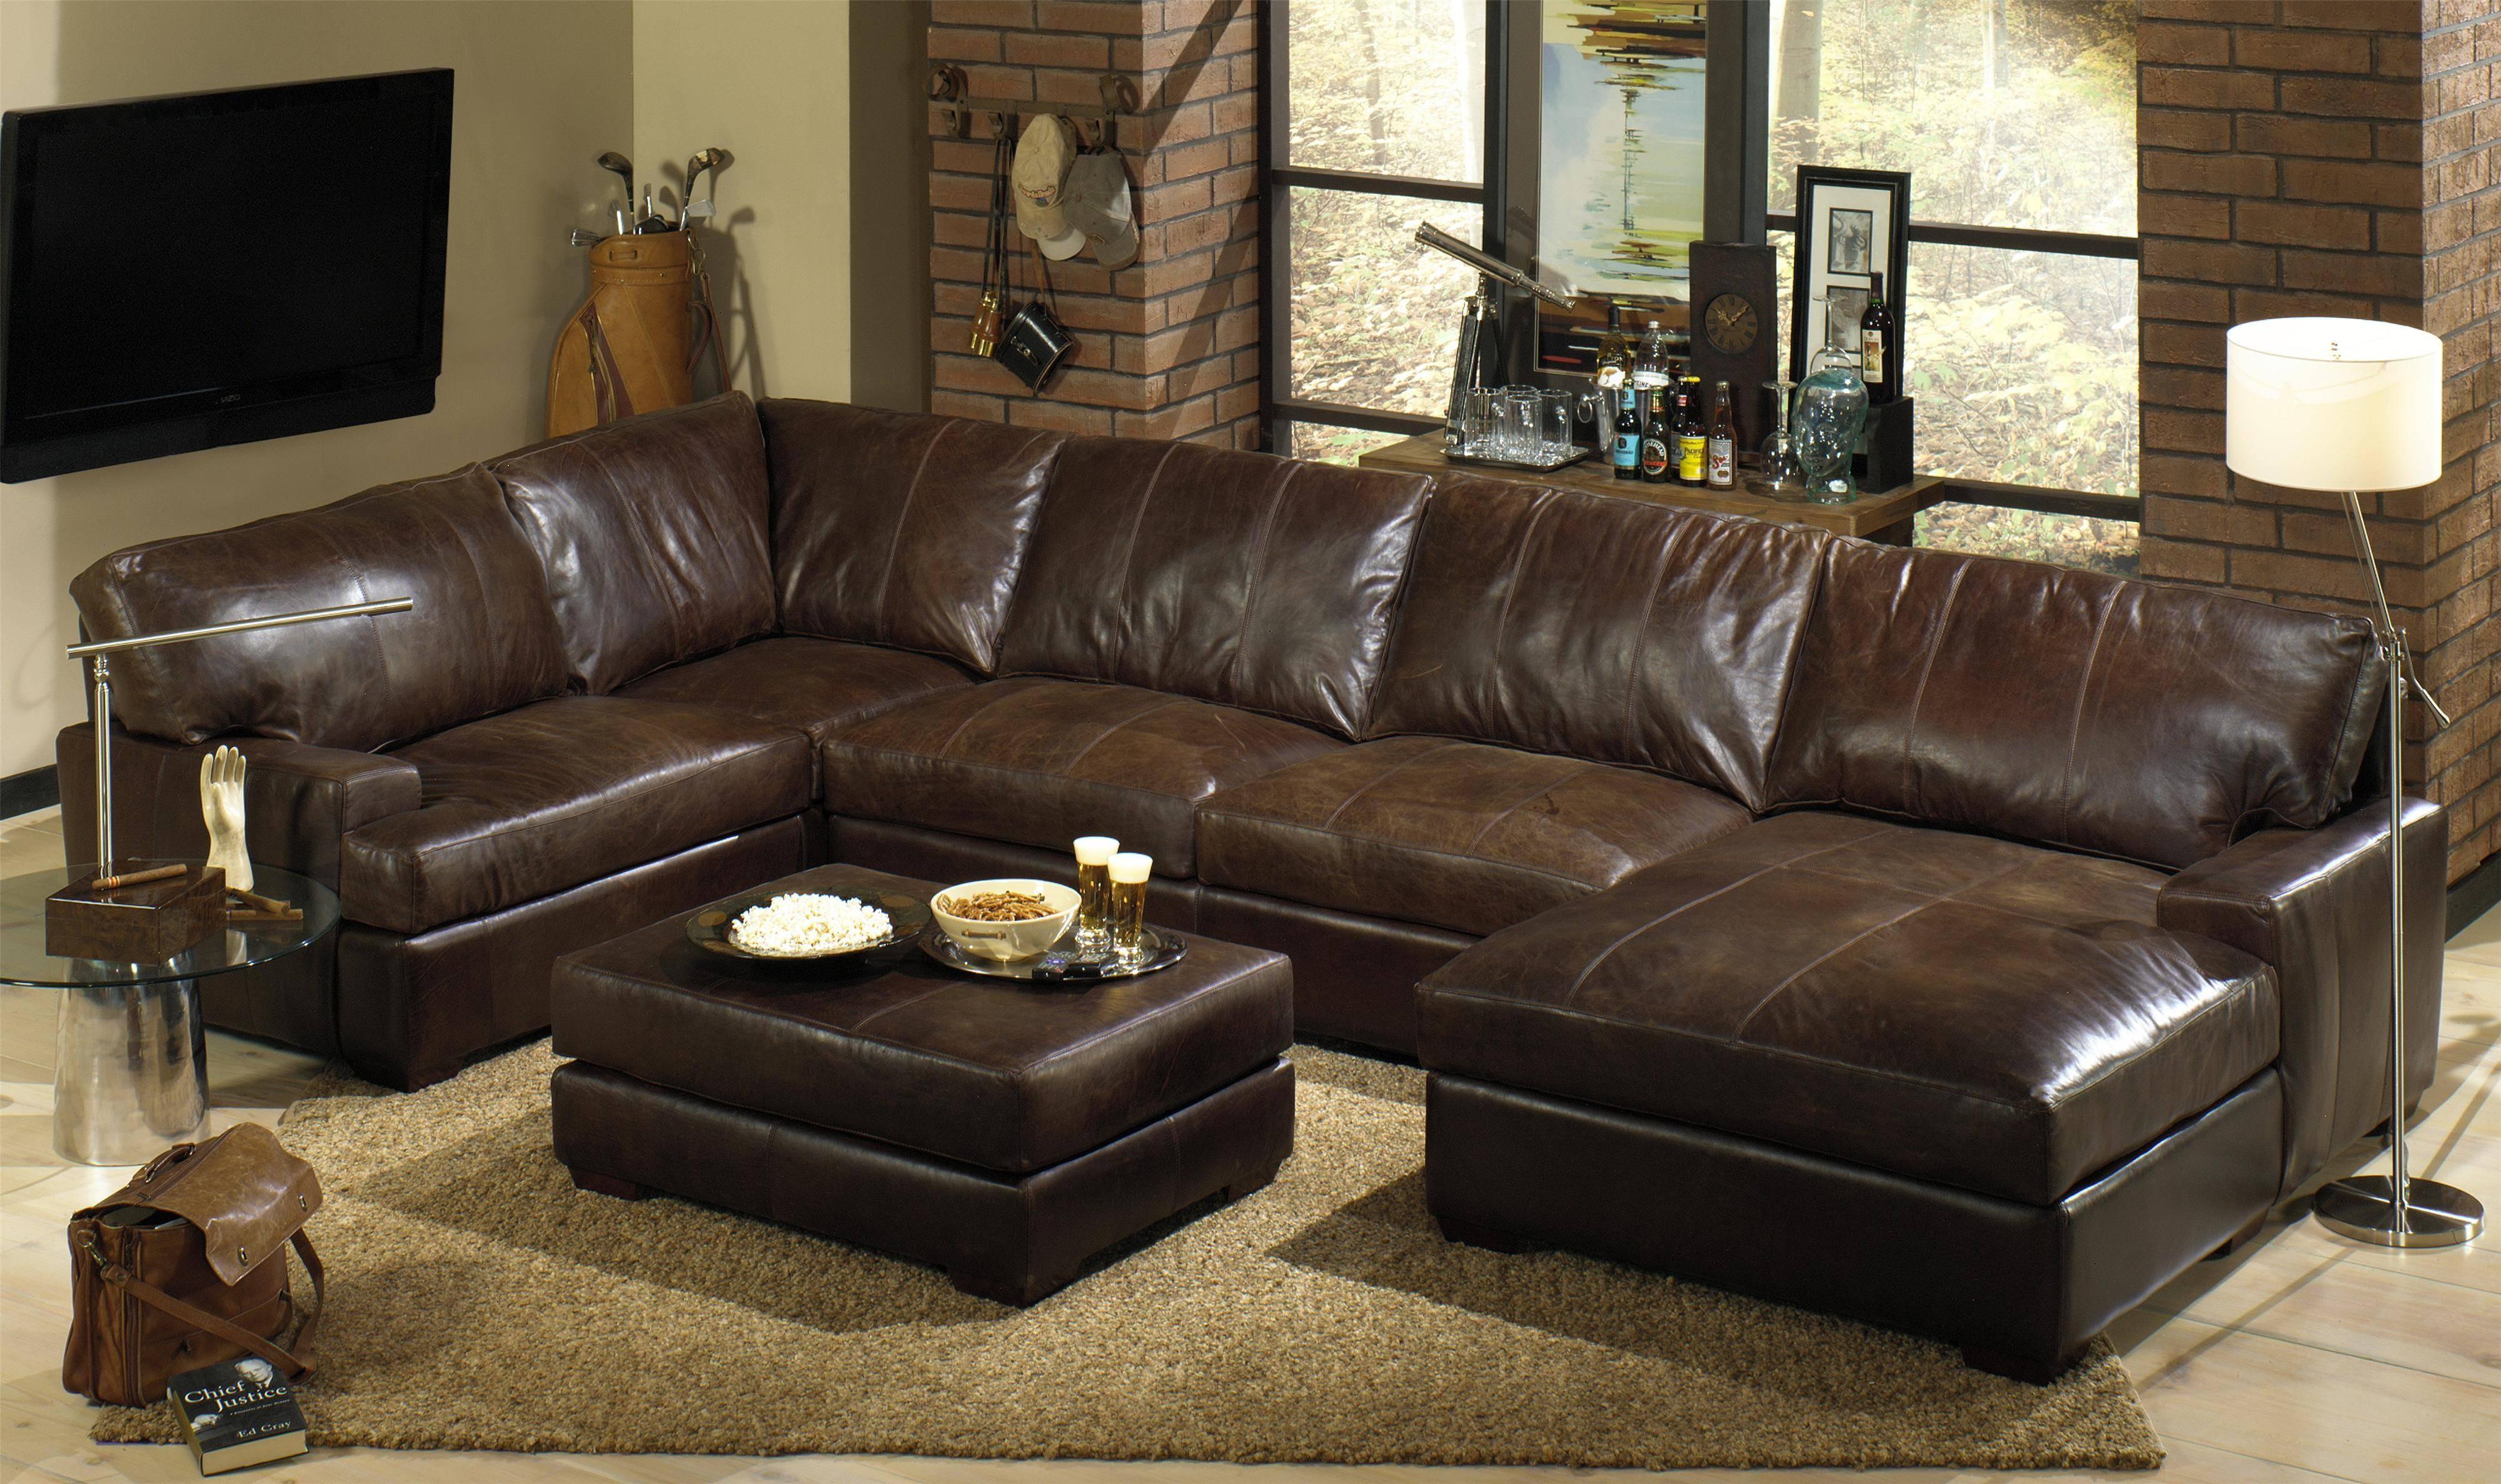 Fancy Slipcovers For Sectional Sofas With Recliners 76 For Your For Seagrass Sectional Sofas (View 1 of 15)